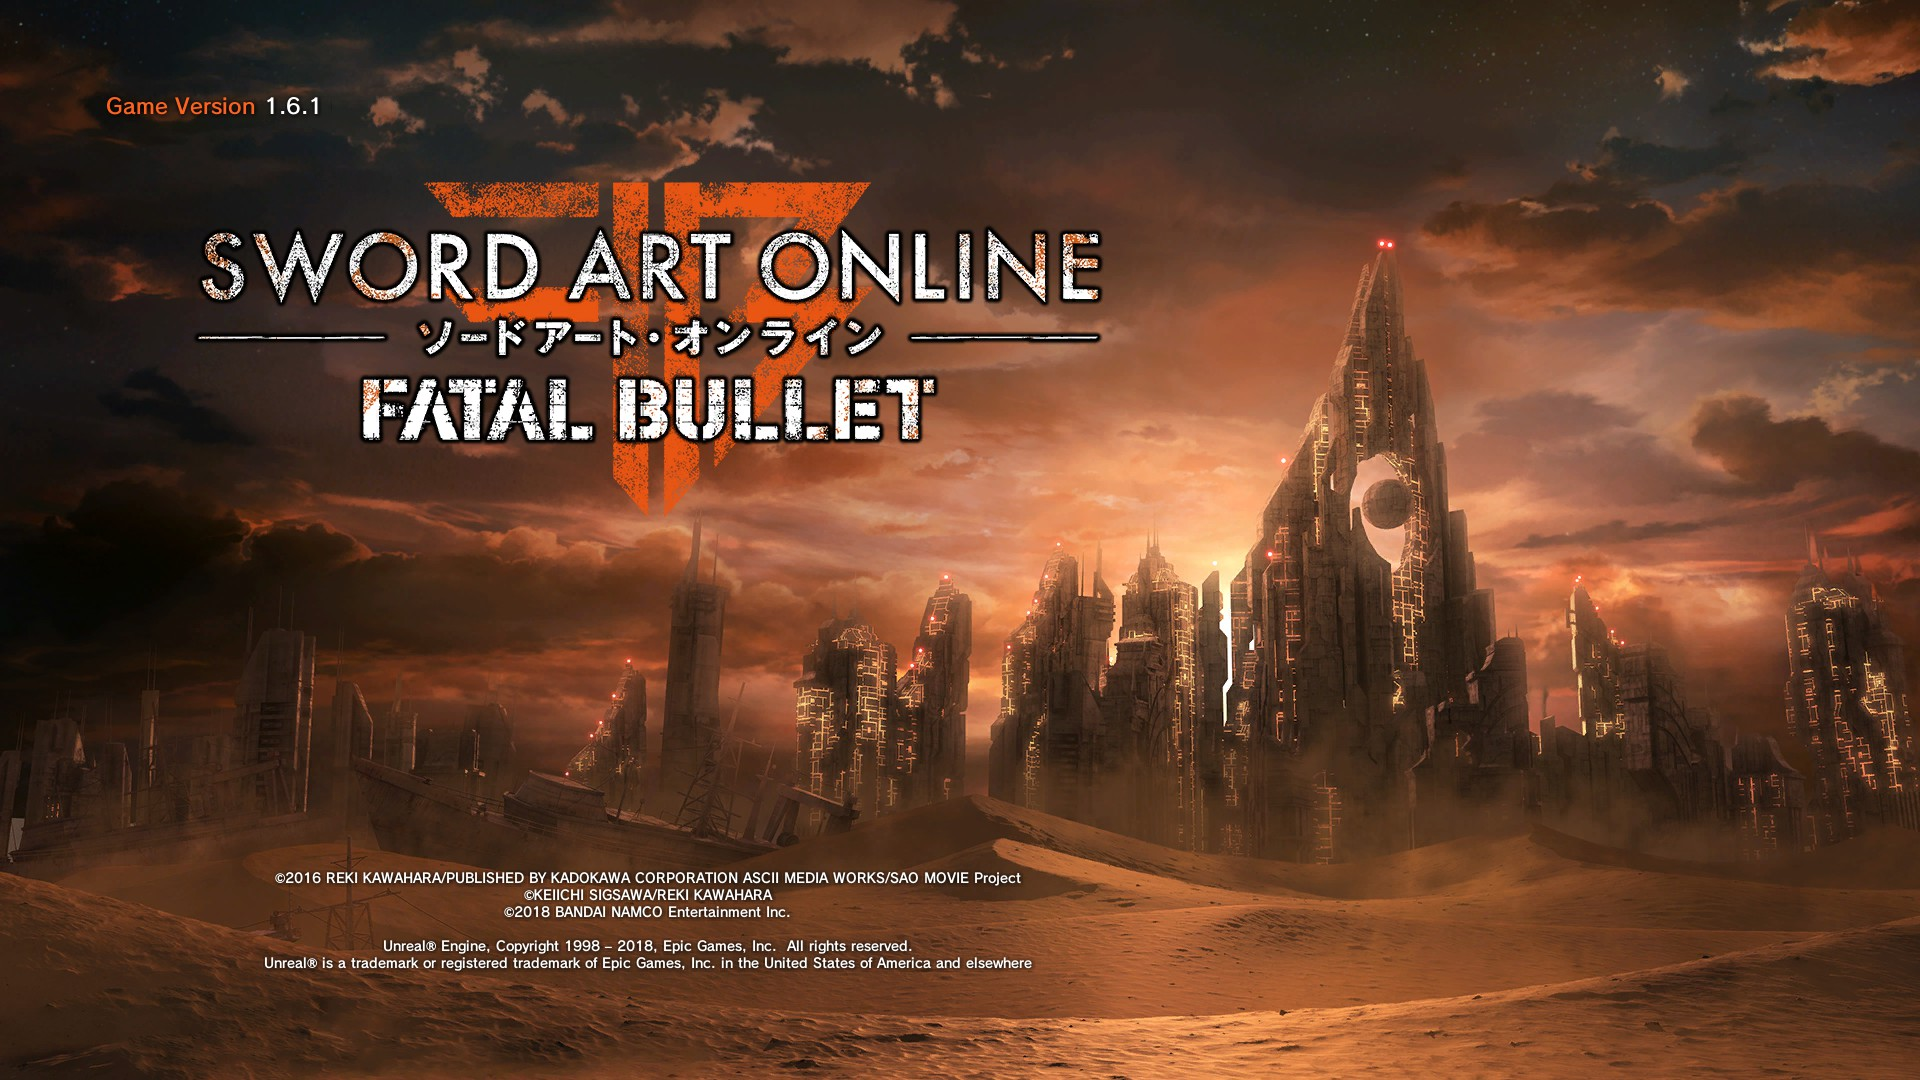 Sword Art Online Fatal Bullet Review Pc Gaming Steam Review